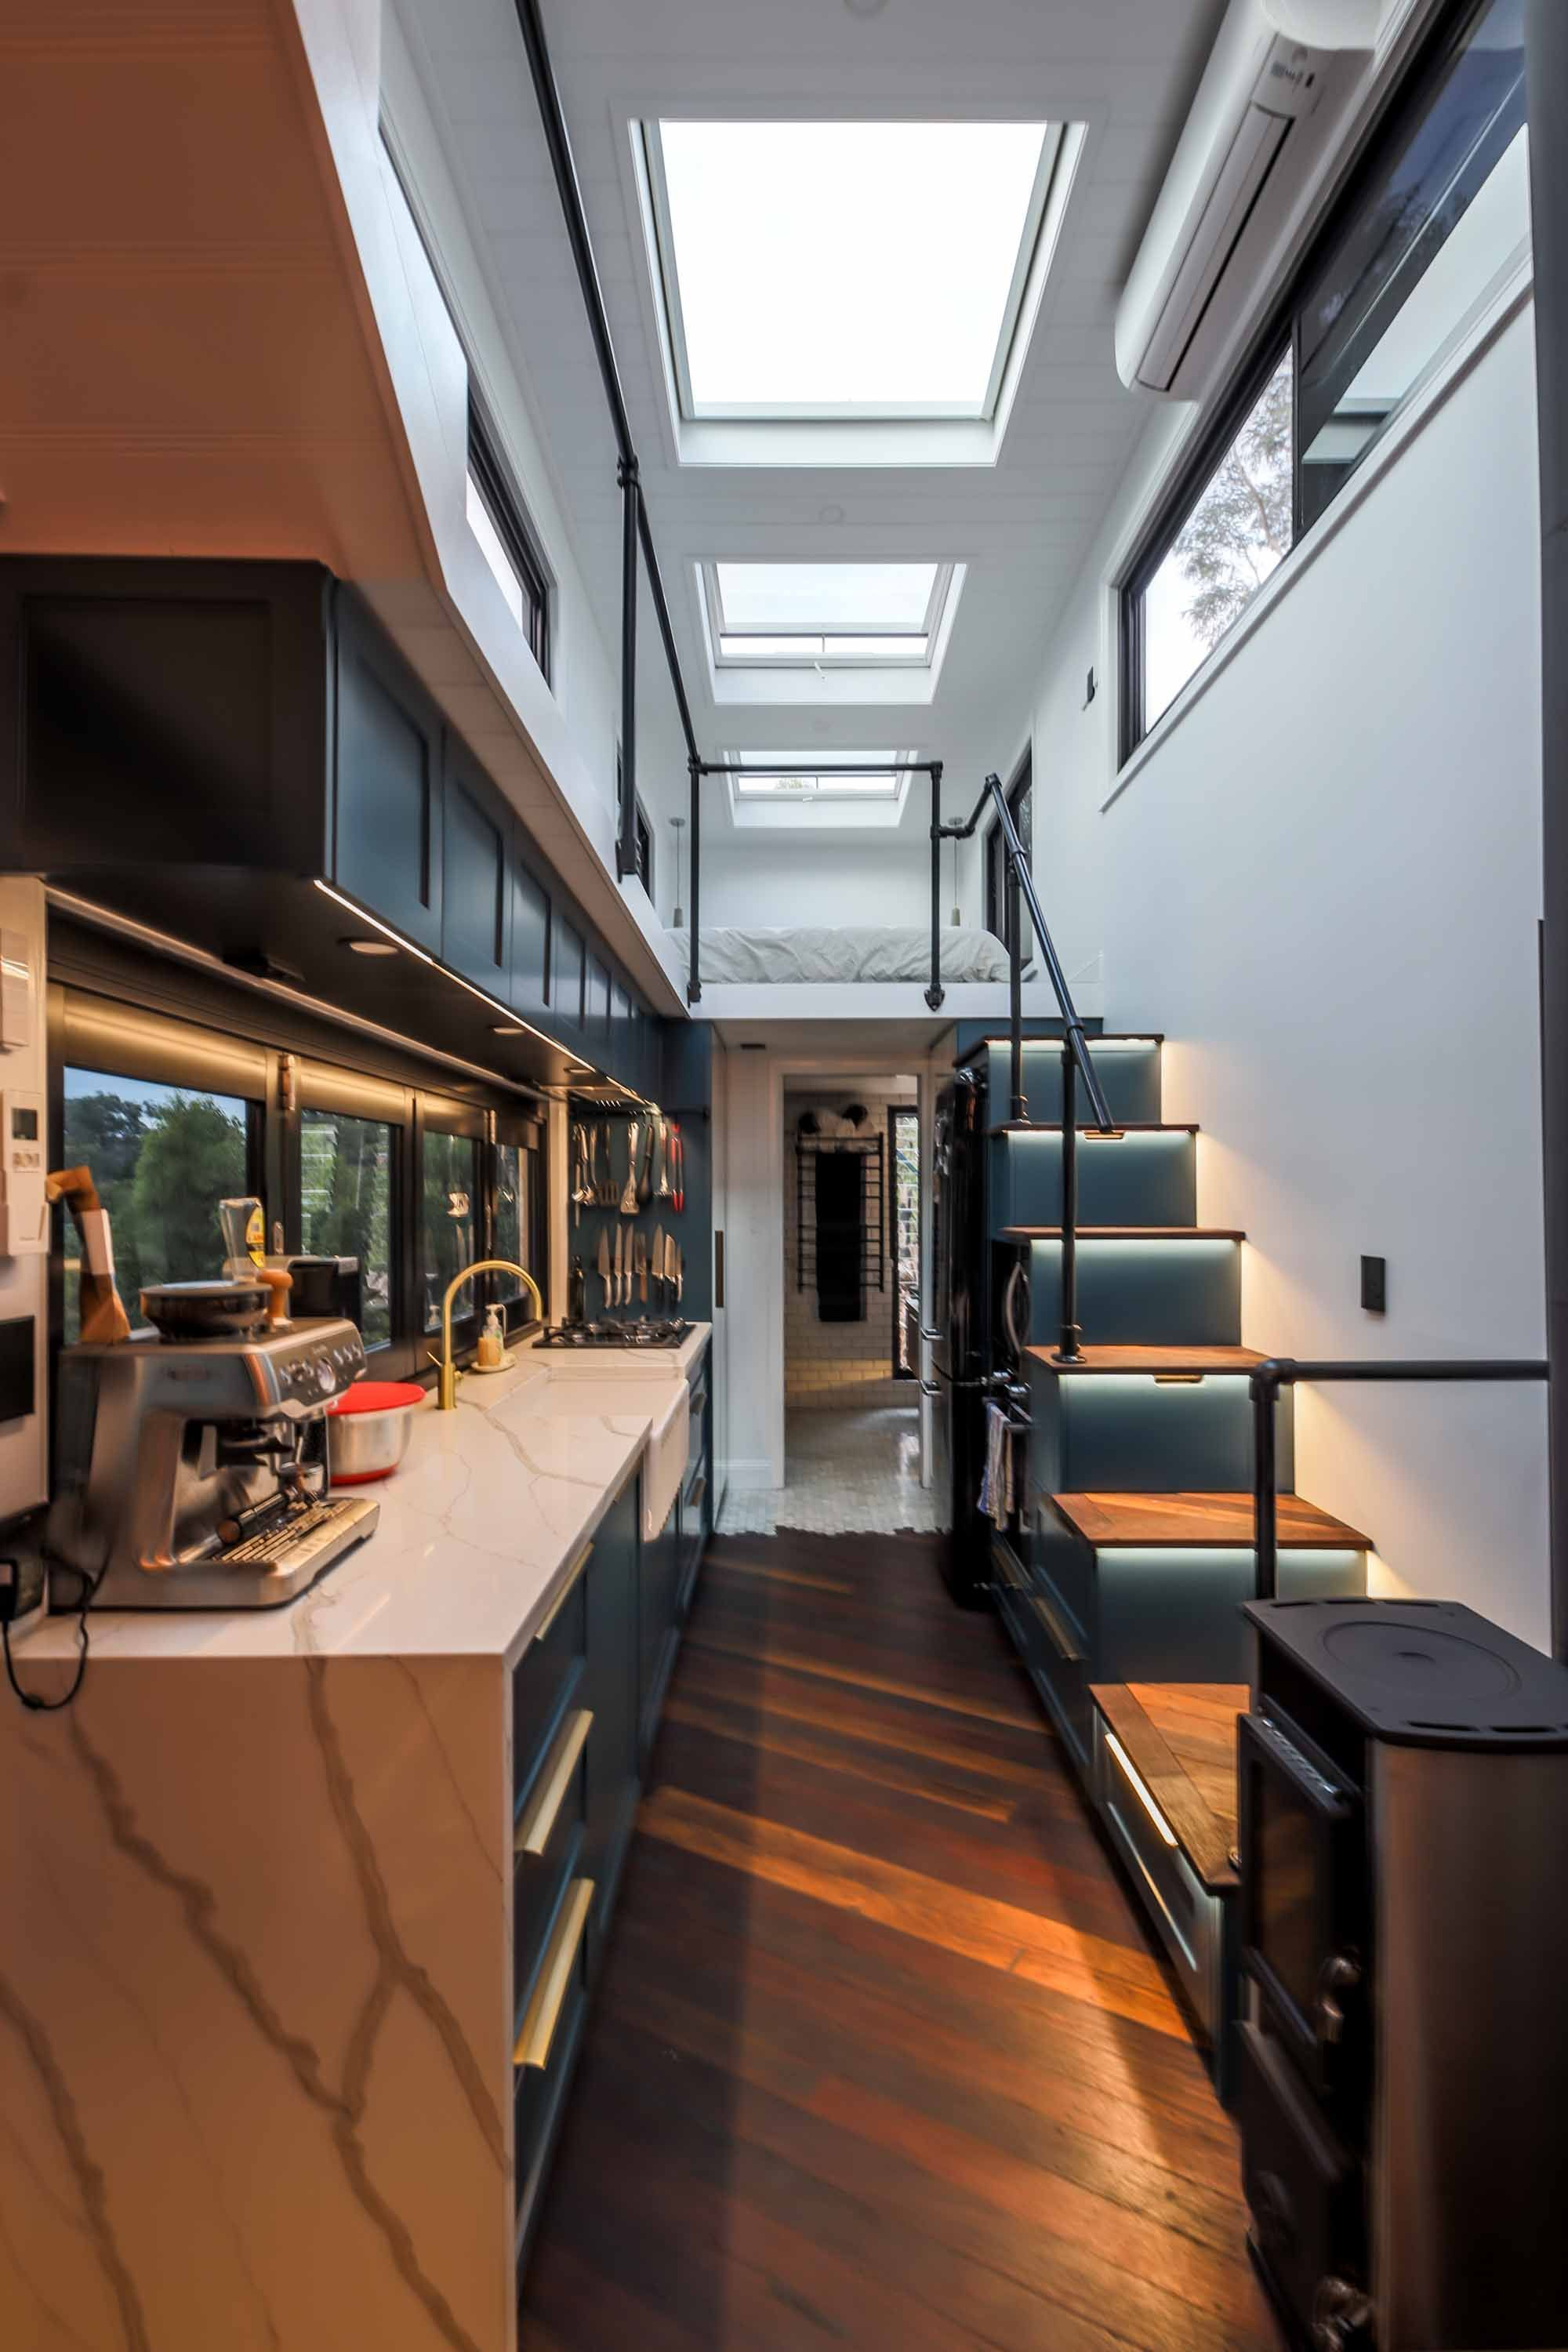 Couple Builds Sleek, Modern Tiny Home, People Are Calling It 'Most Beautiful Tiny Home Ever'